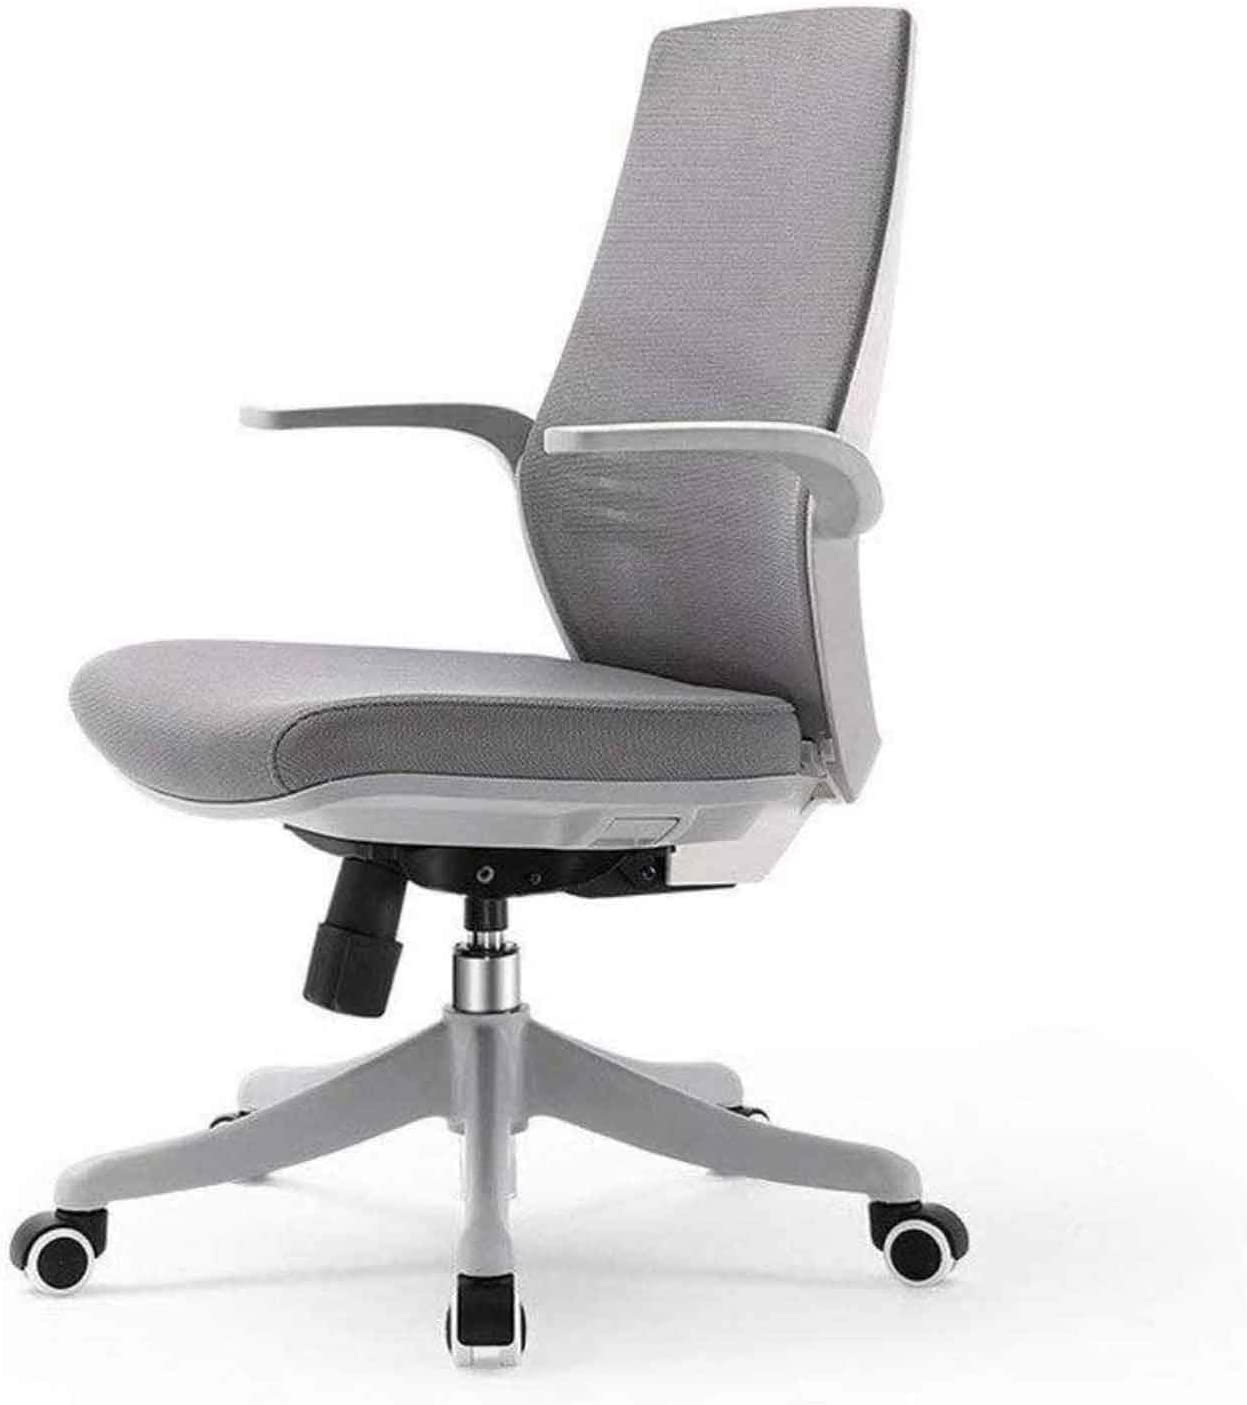 DJDLLZY Chairs Dedication Special Campaign Stools Video Home for Office Game